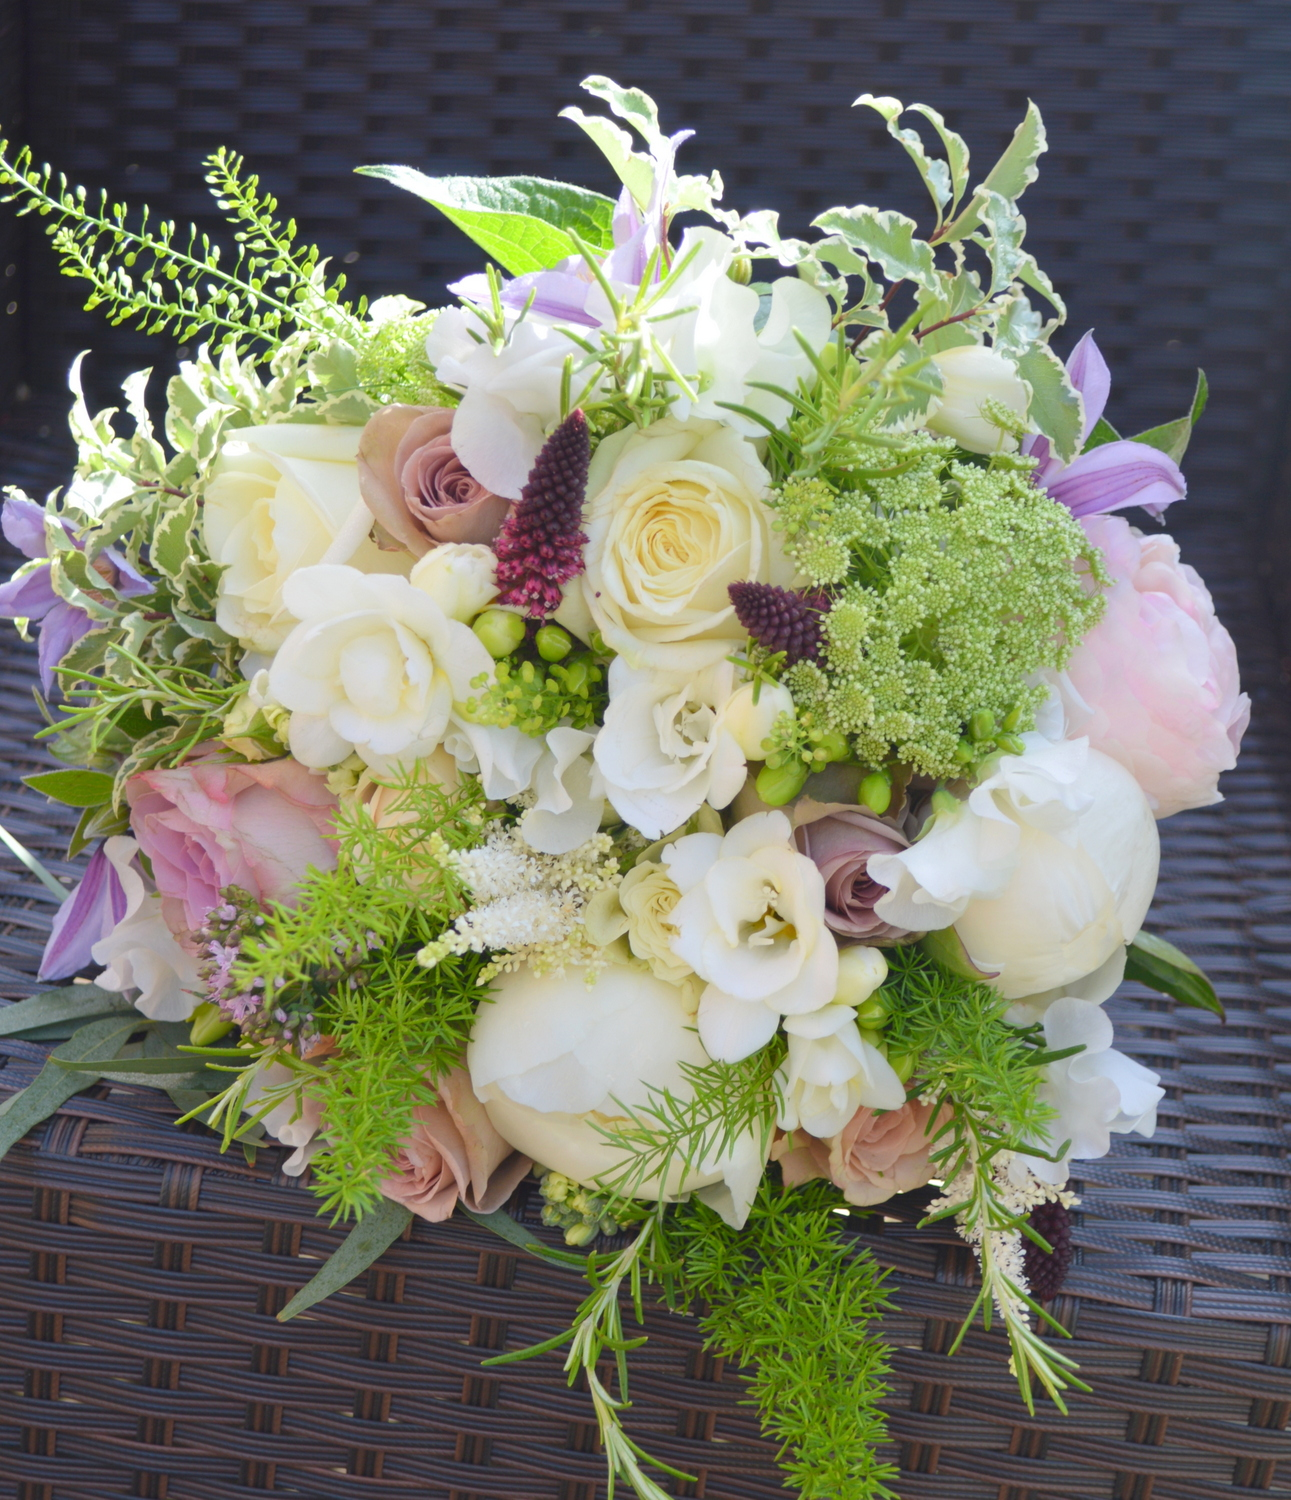 Peony & rose bridal bouquet in white & lilac